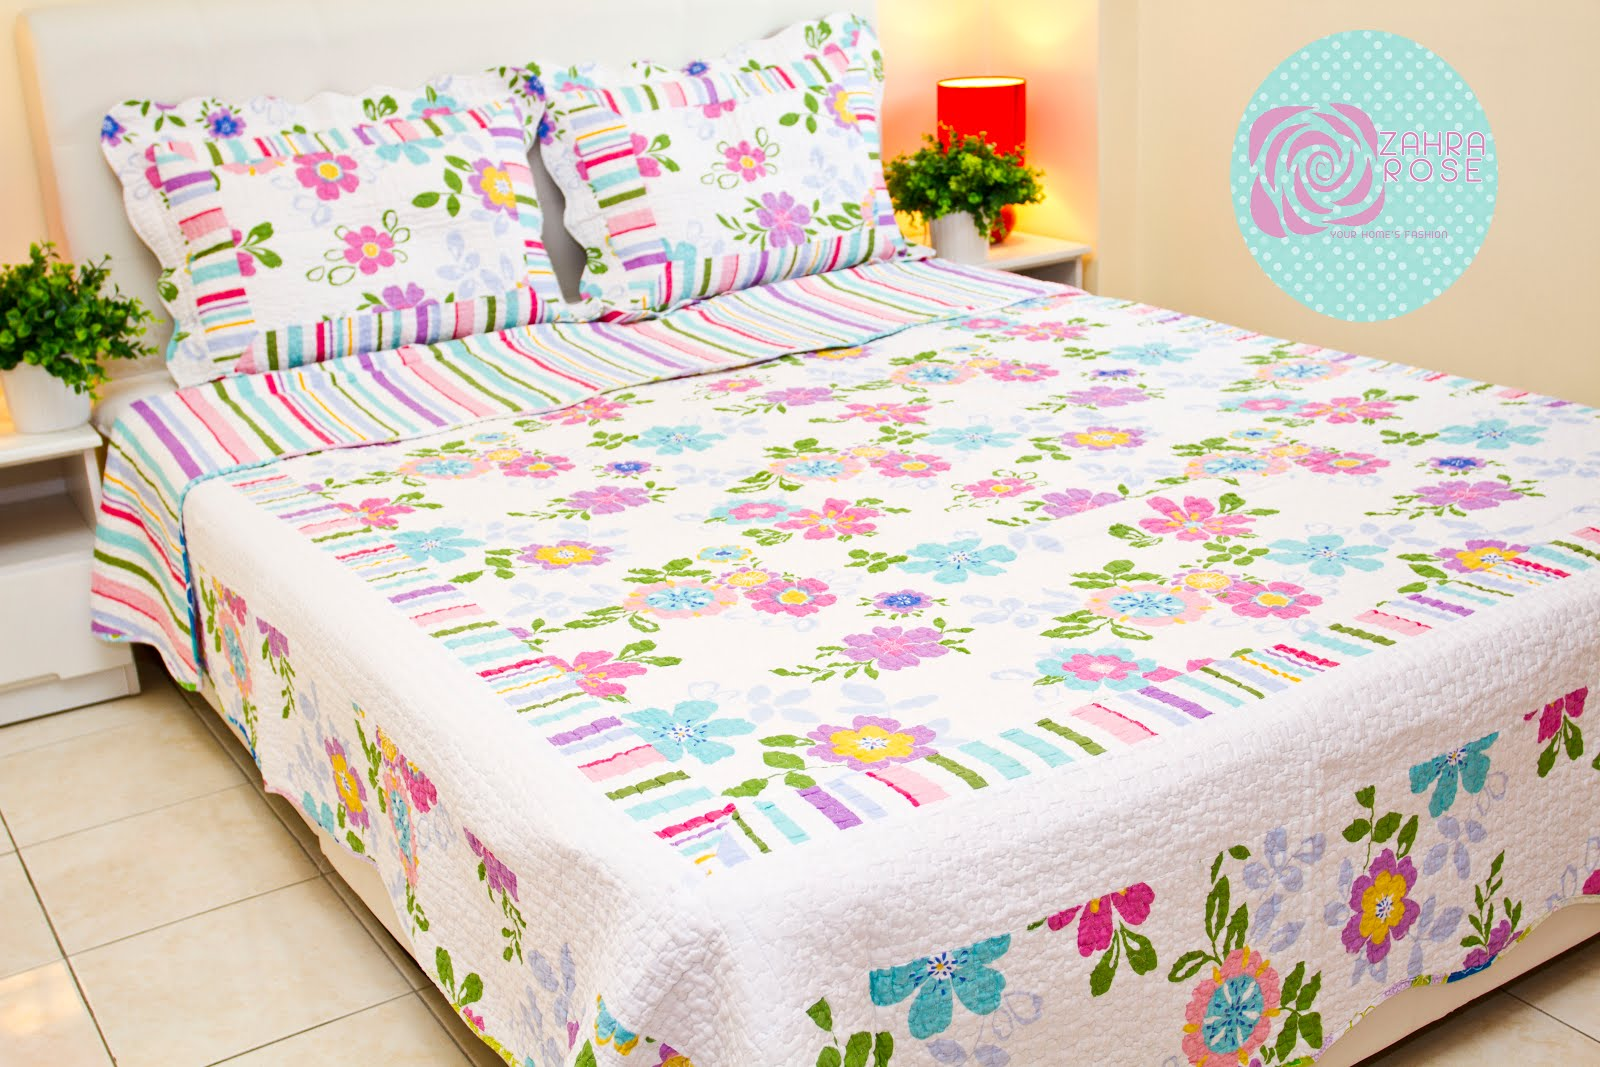 Bed sheets designs patchwork - Zr 004